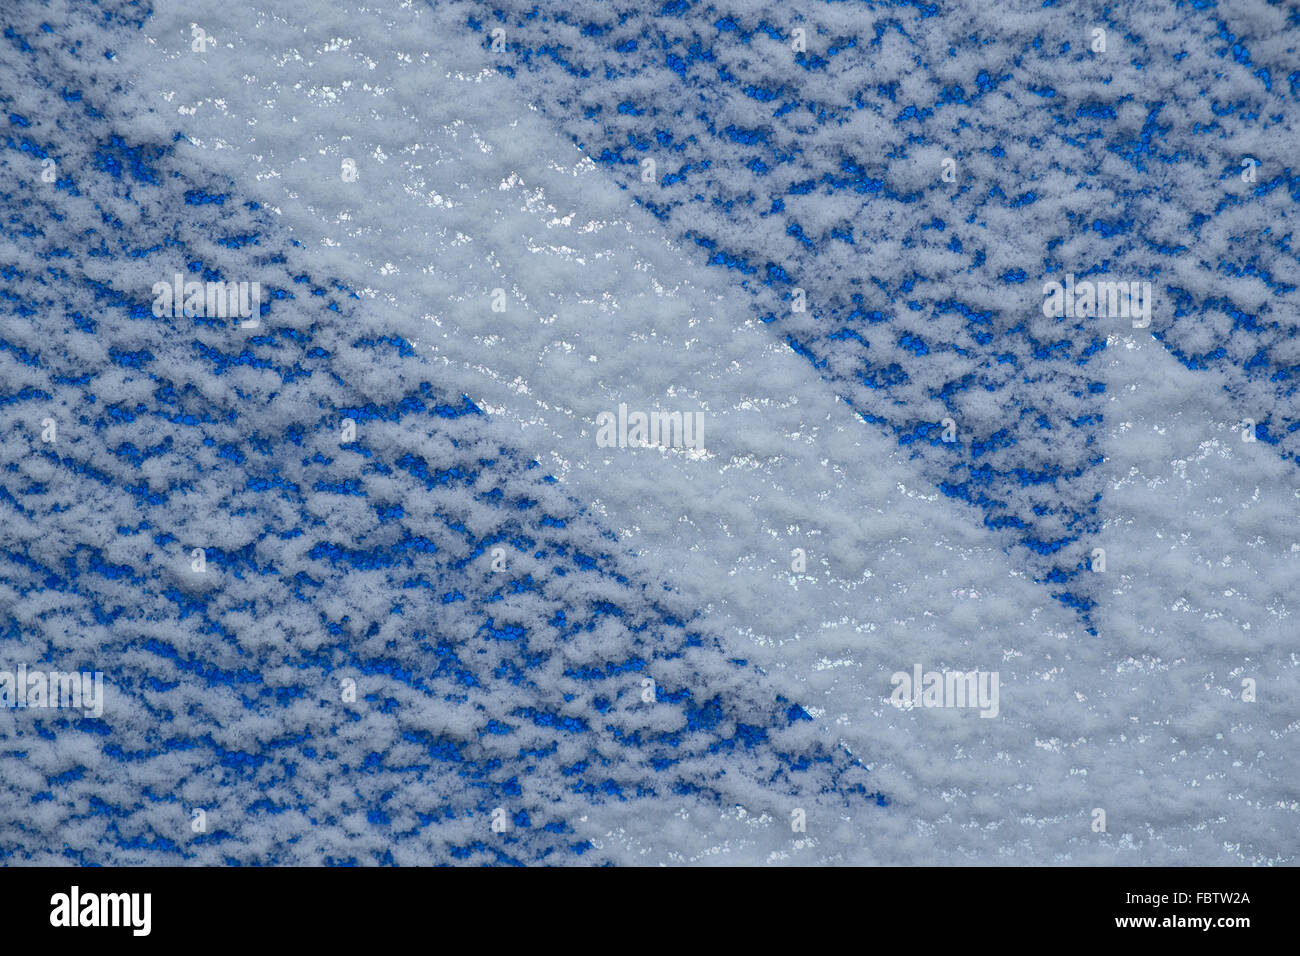 Snow on a reflective blue sign with a white directional arrow - Stock Image